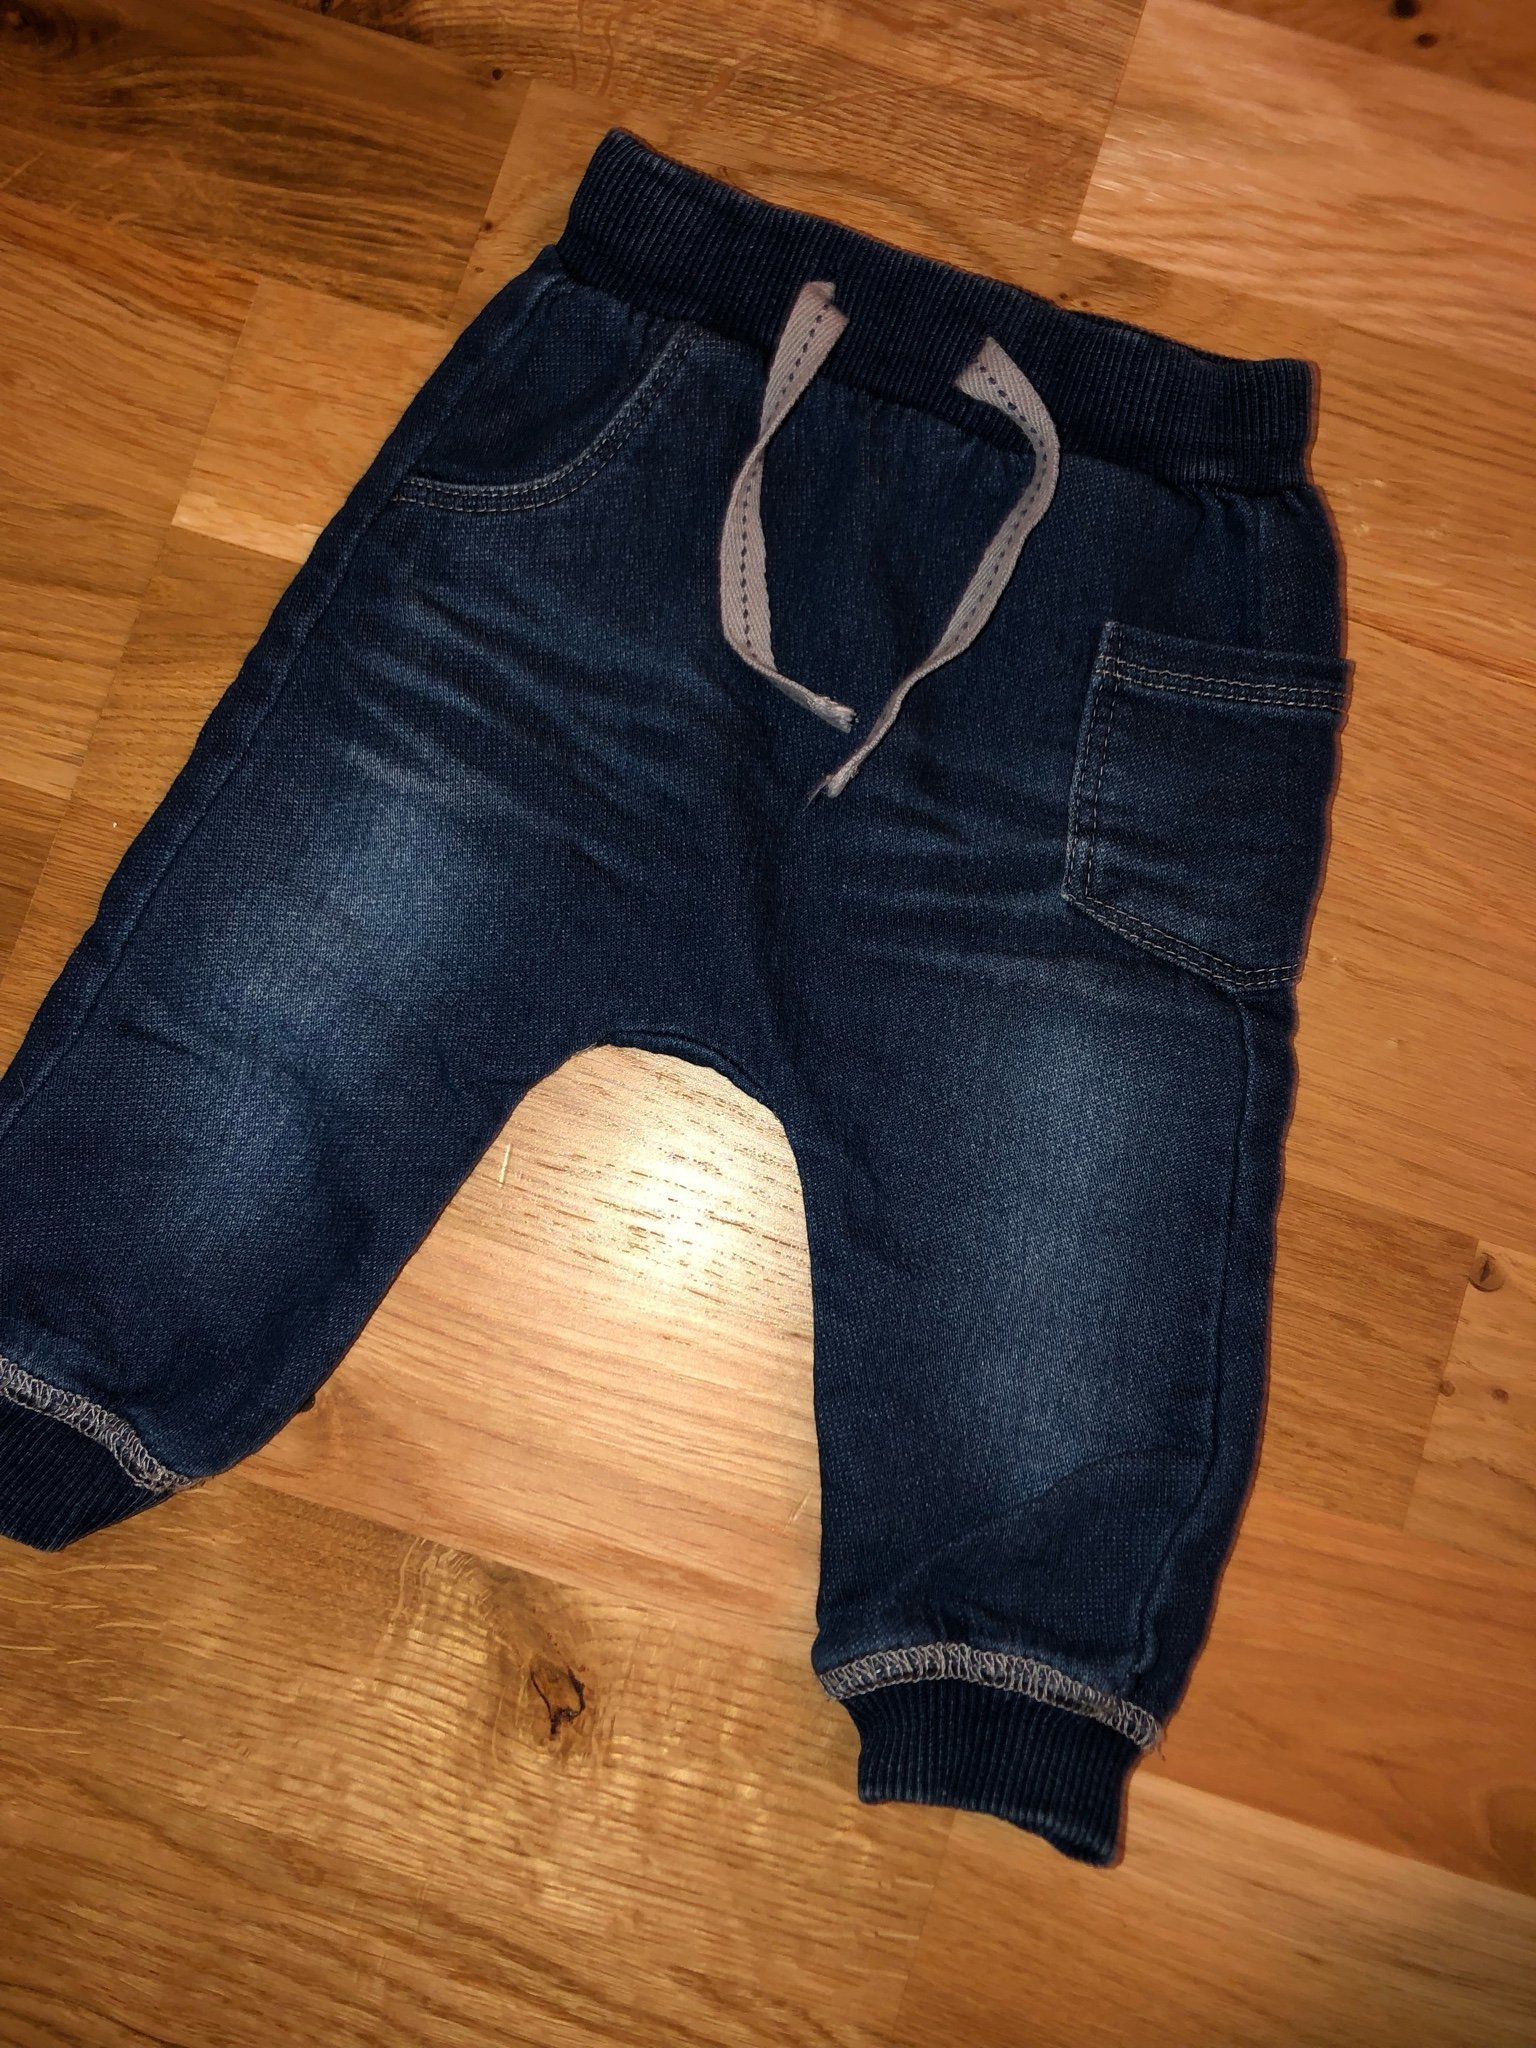 Jeans ifrån name it strl 62